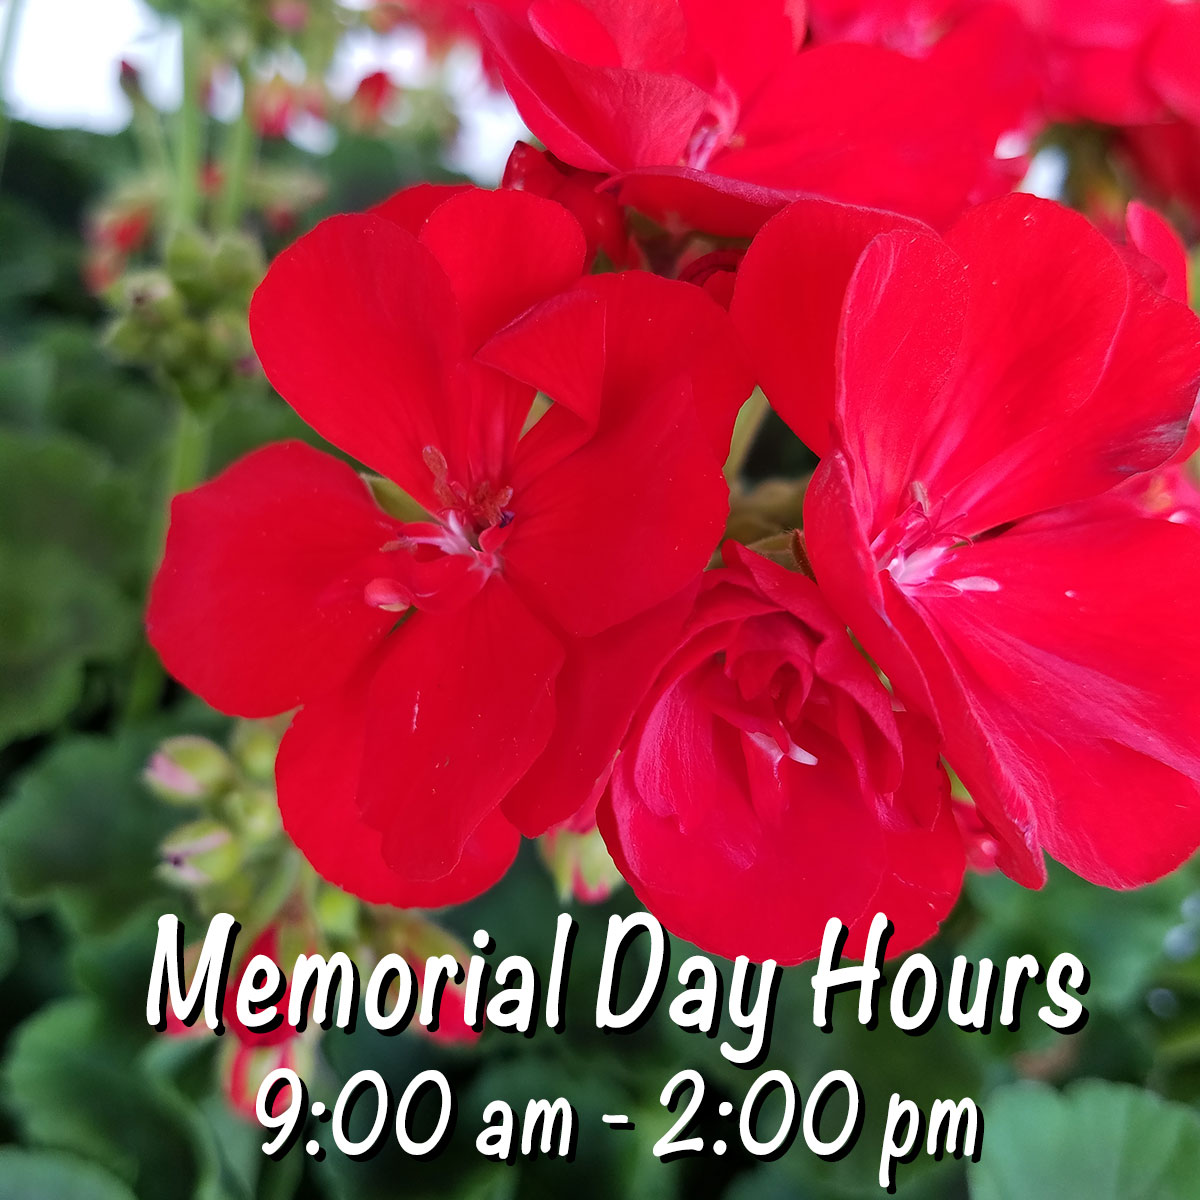 Memorial Day Hours: 9 am - 2 pm